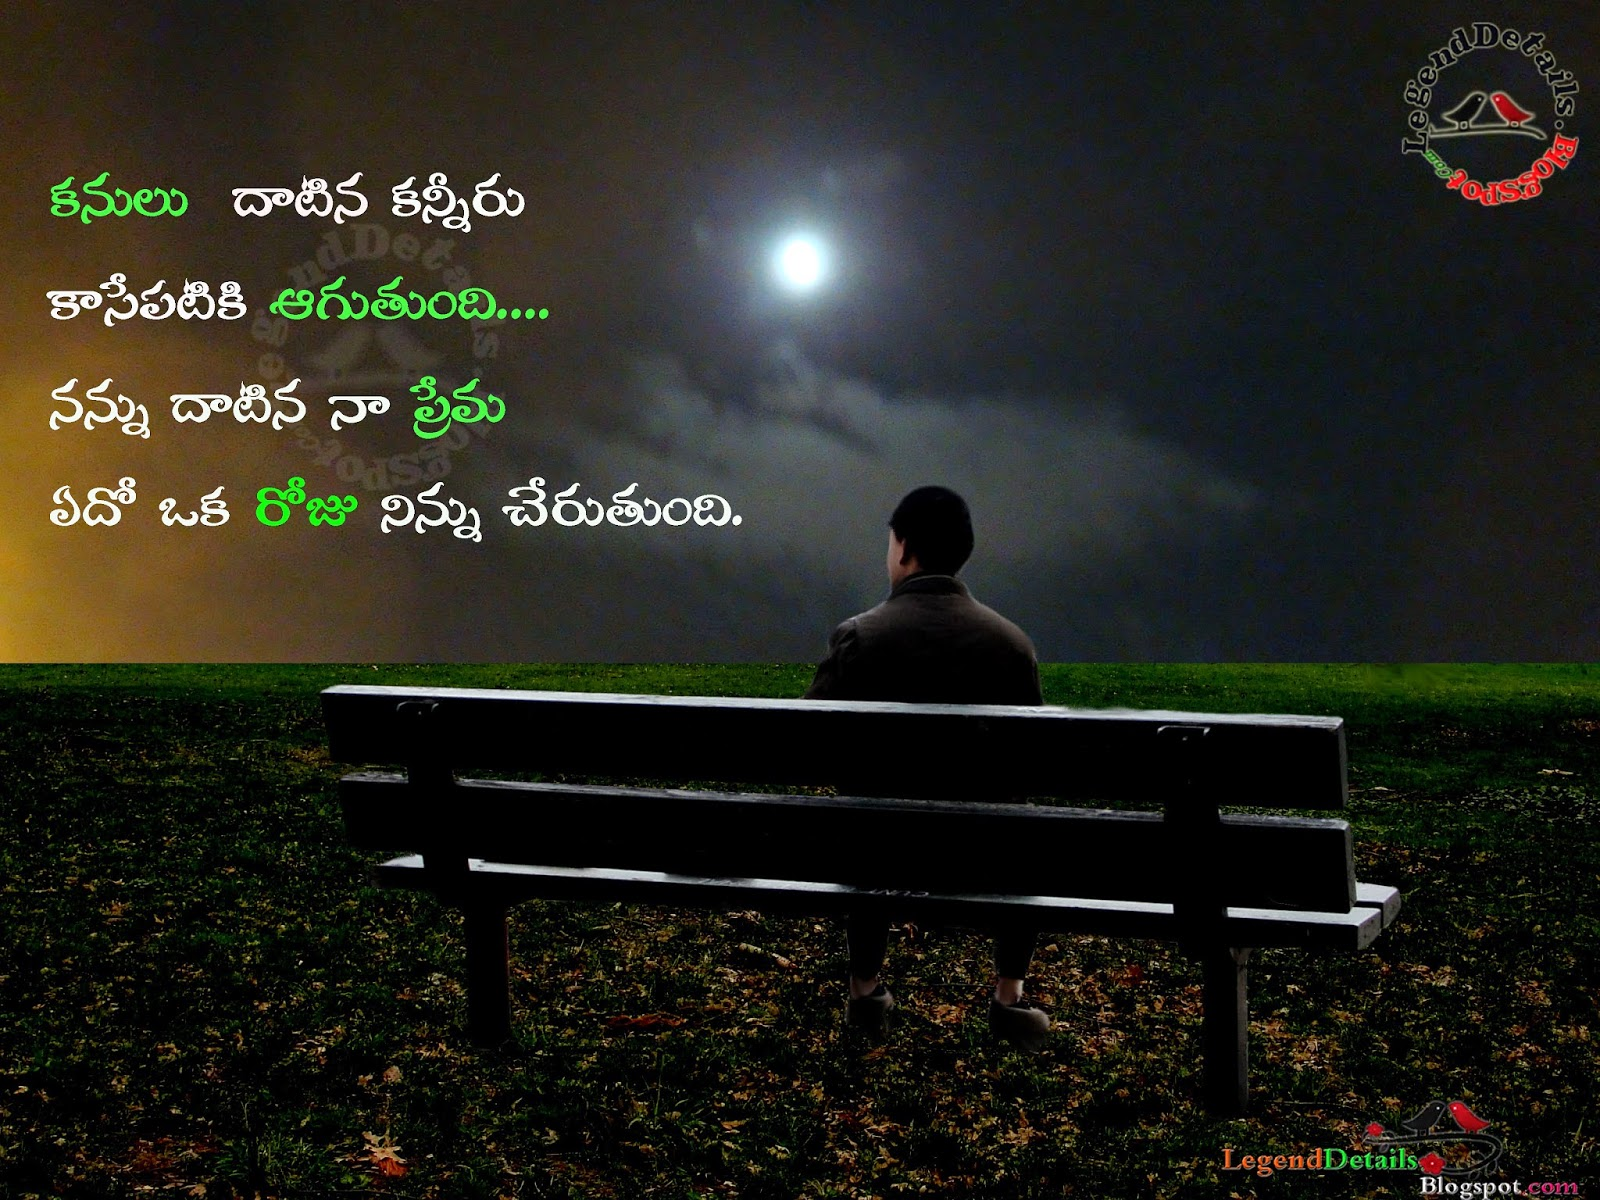 Sad Love Quotes That Make You Cry In Telugu : ... Love Quotes Telugu Sad Love Quotes New Telugu Love Failure